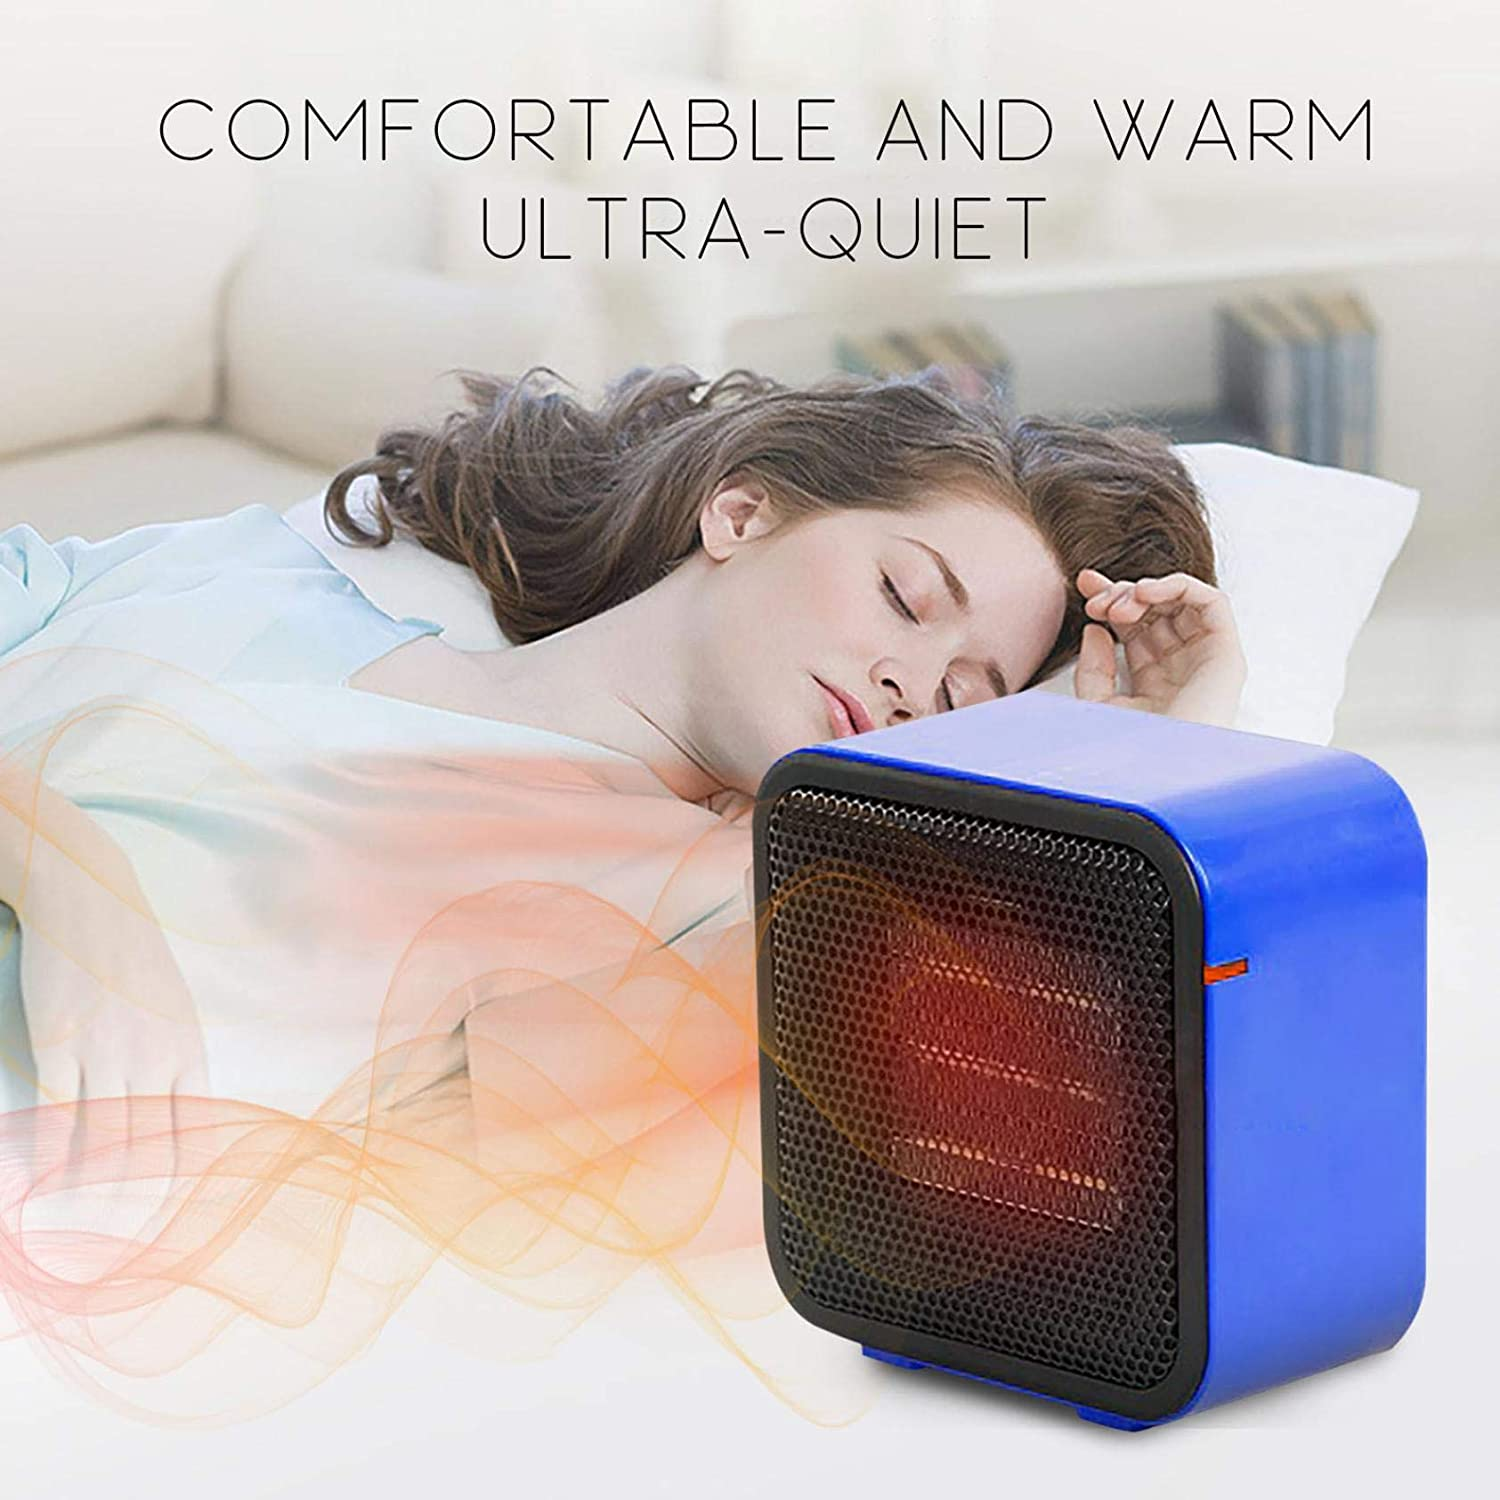 Momolaa Fan Heater Portable,400W Electric Heater,Safety Overheat Protection, Intelligent Control, Touch-Sensitive Buttons, Adjustable Thermostat for Home/Office/Bedroom Black 1